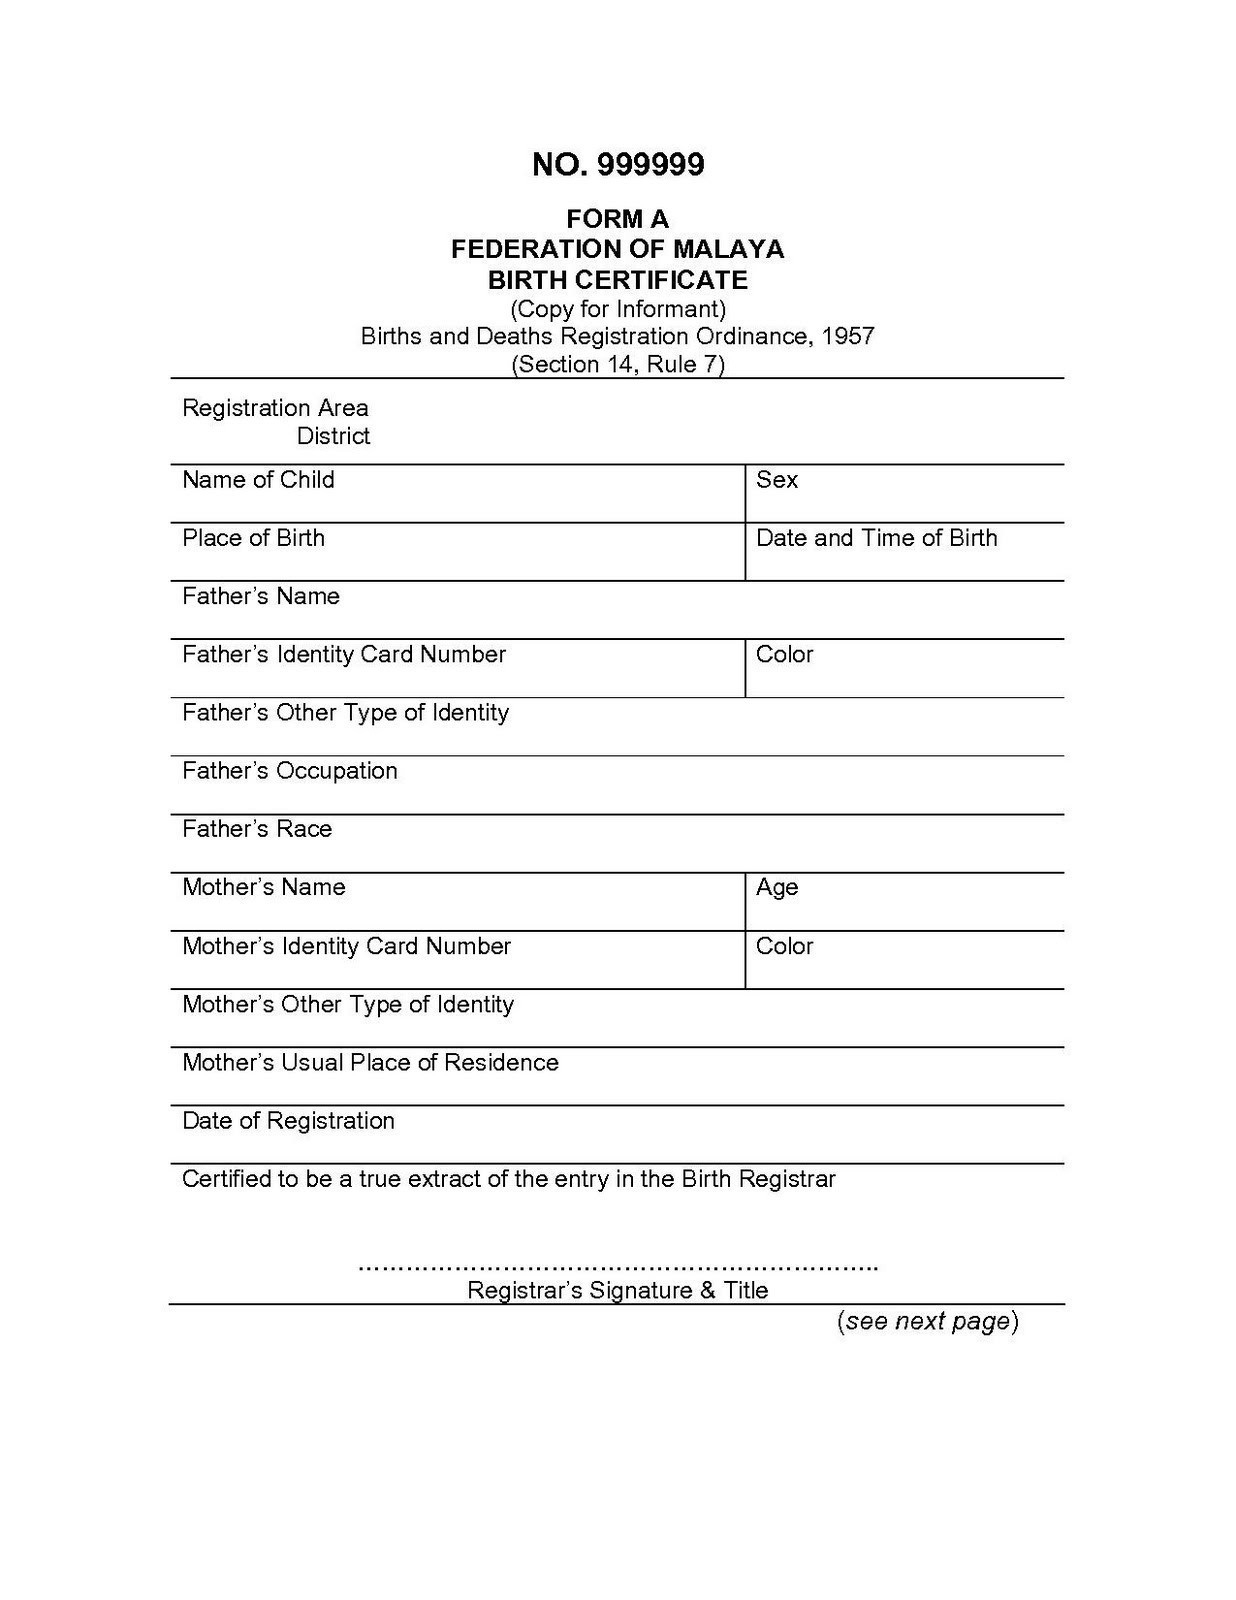 Birth Certificate Translation Template English To Spanish Intended For Birth Certificate Translation Template English To Spanish